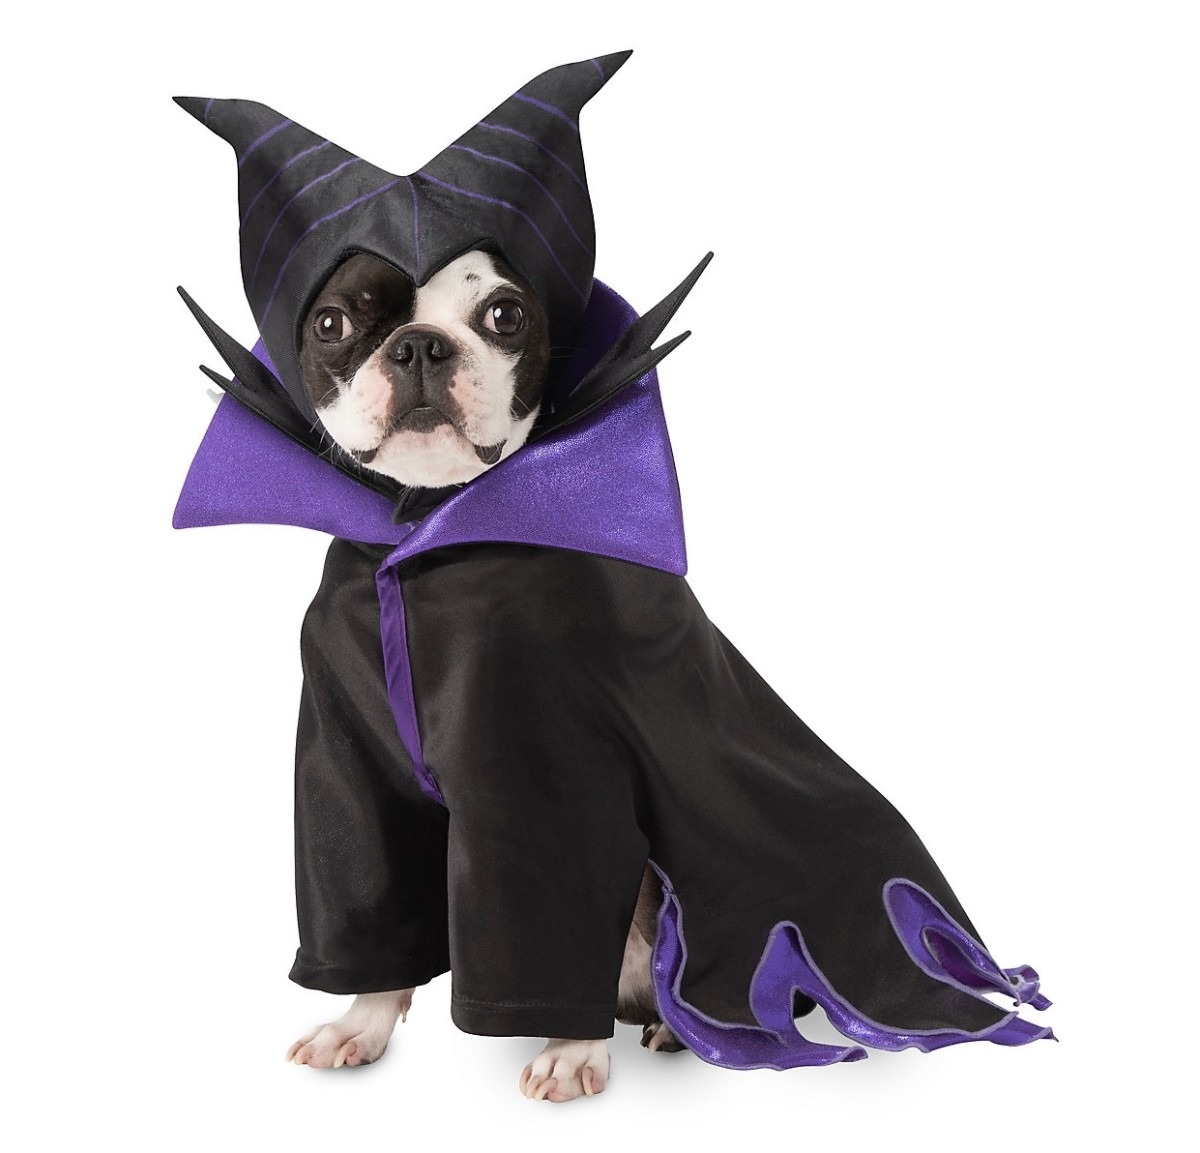 New Disney Halloween Costumes for Pets at shopDisney! 1